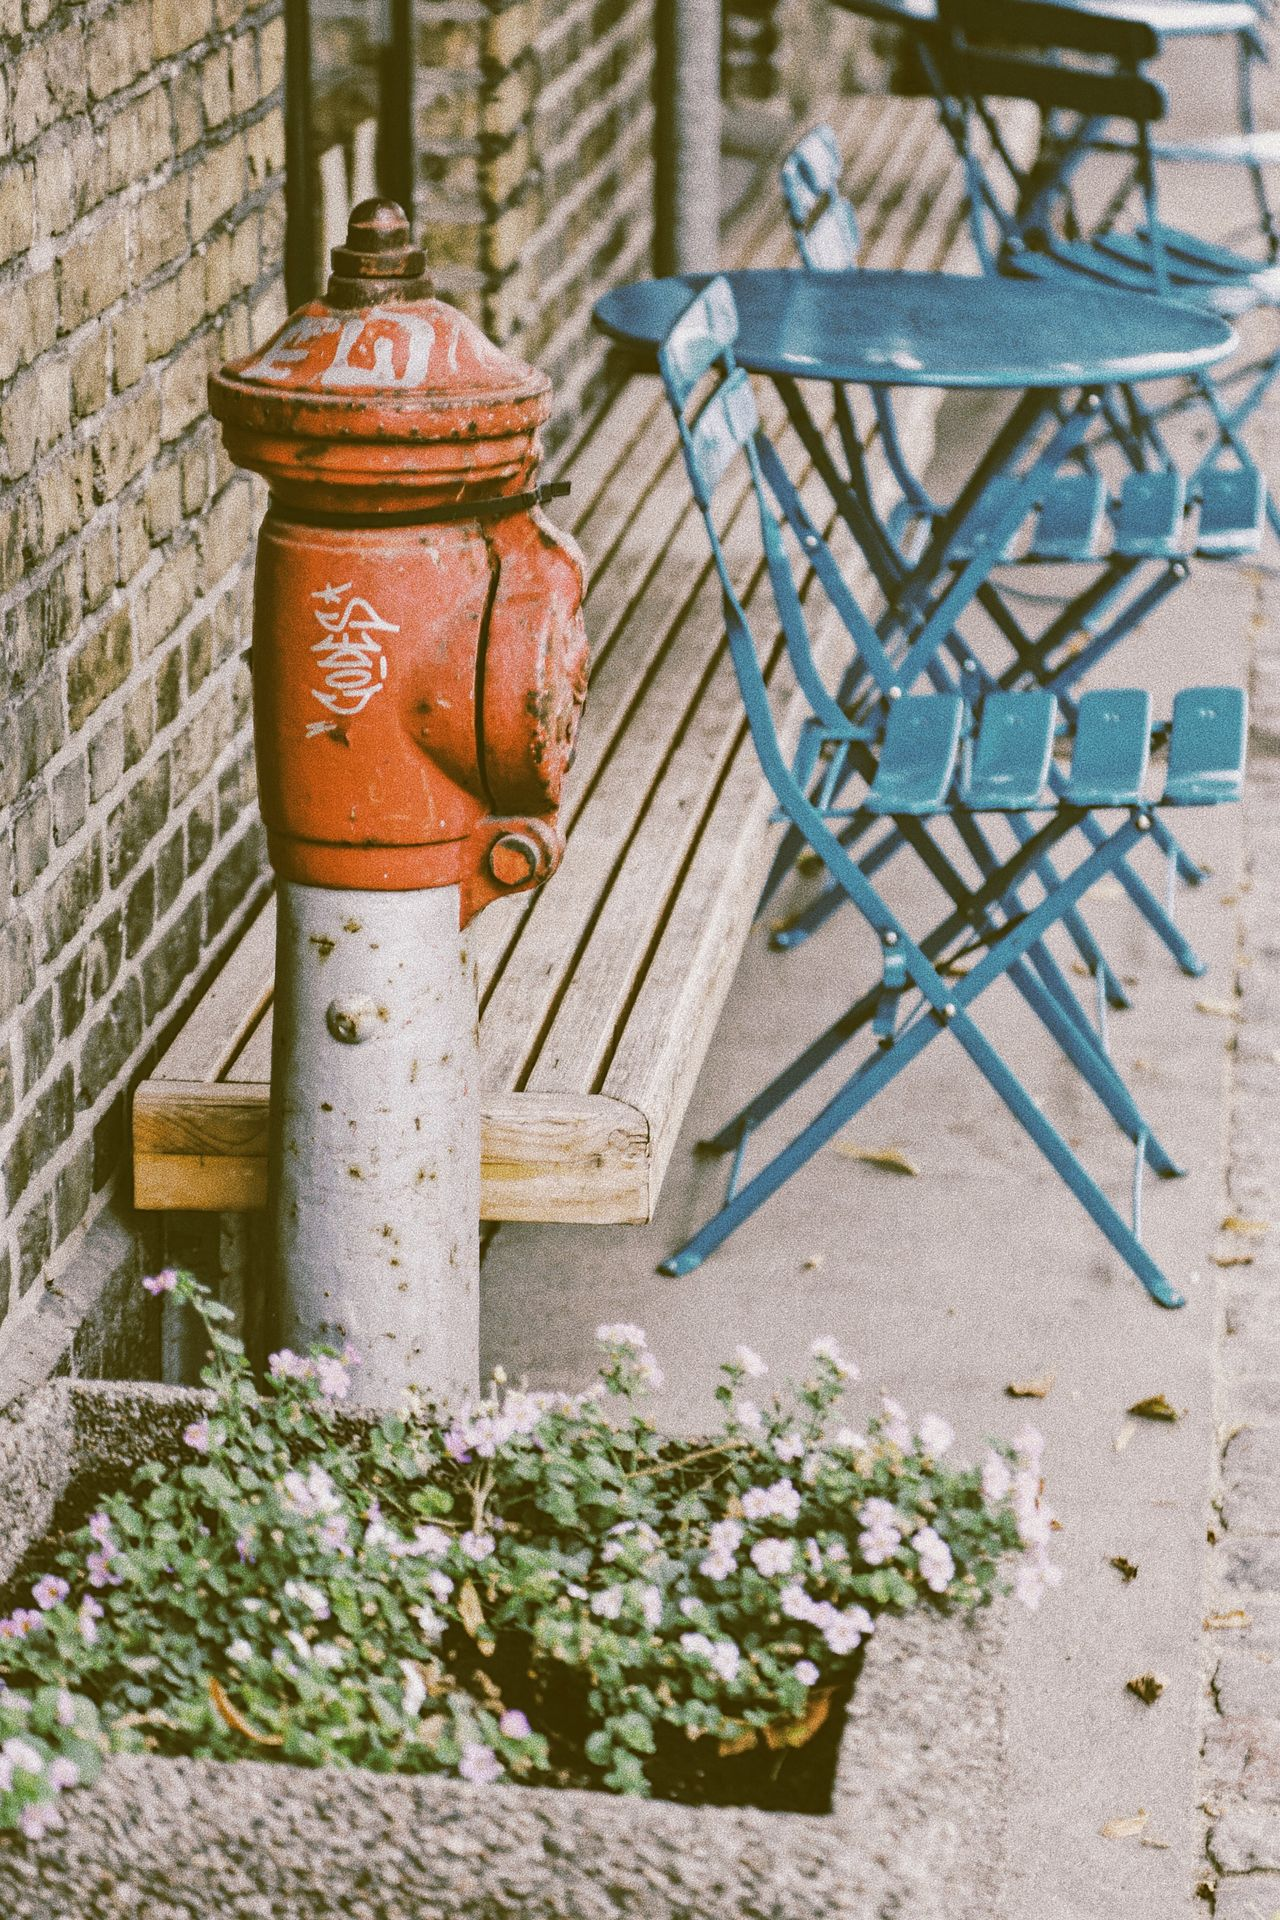 Outdoors No People Plant Day Close-up Nature Fire Hydrant Vintage Vintage Style Street Photography Cafe Outdoor Photography Furniture Design Rustic Style Rustic Charm Rustic Beauty City Street Vintage Stuff Blue Idyllic Detail Firefighter